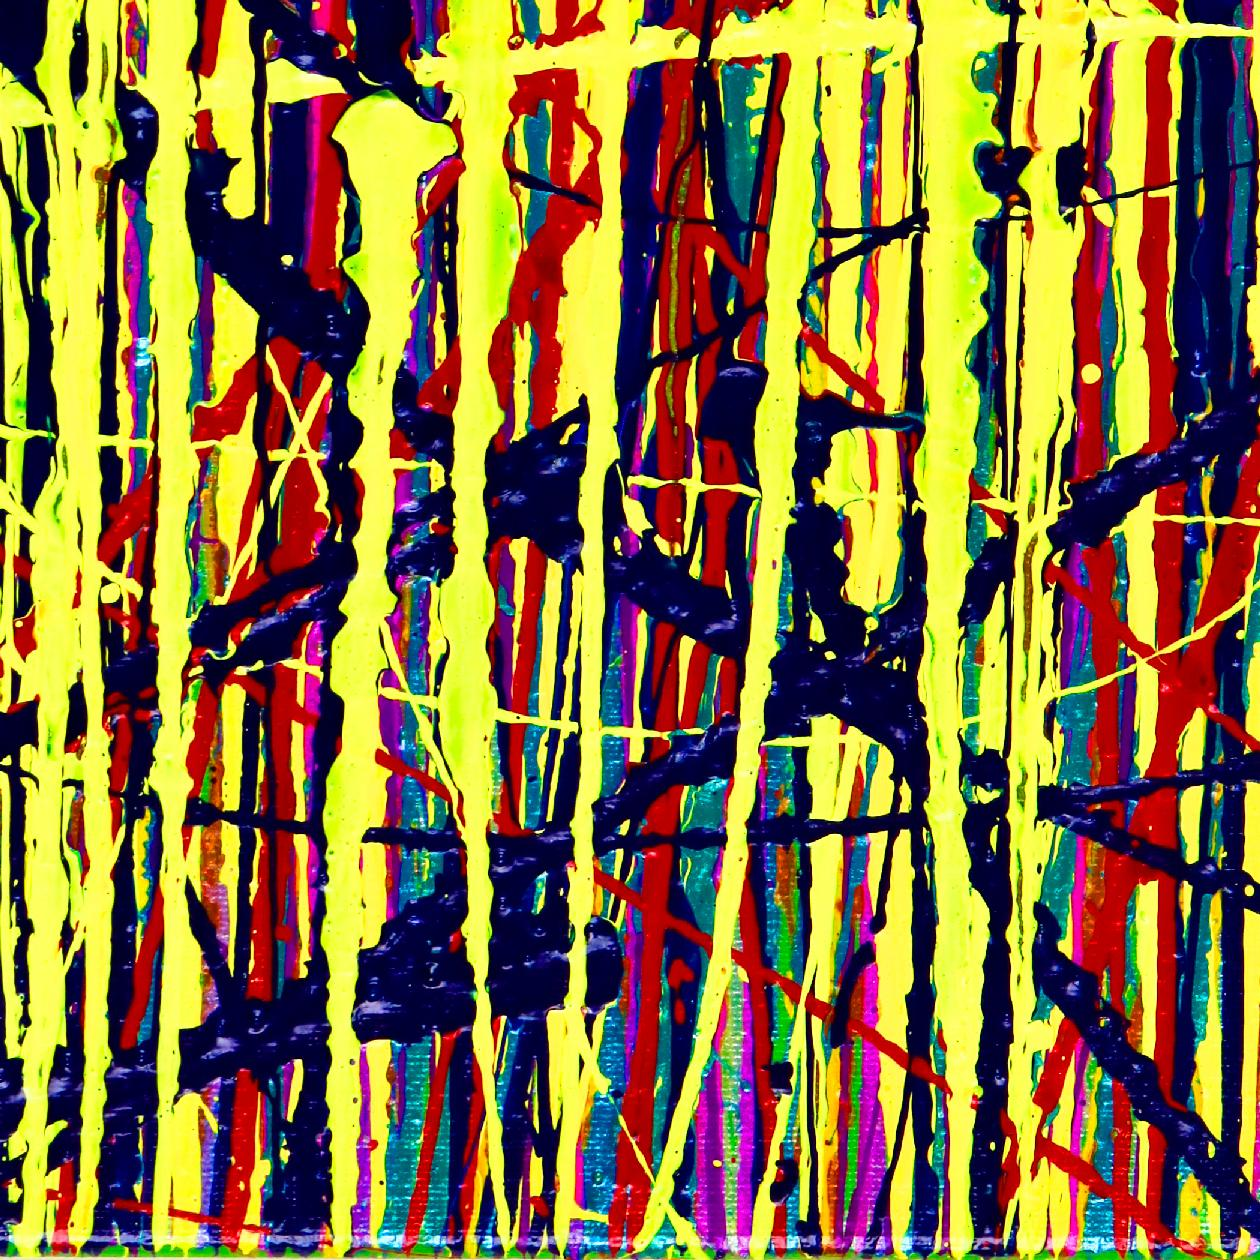 Daydream (Chaos Garden) 2 - Action painting (2020) by Nestor Toro